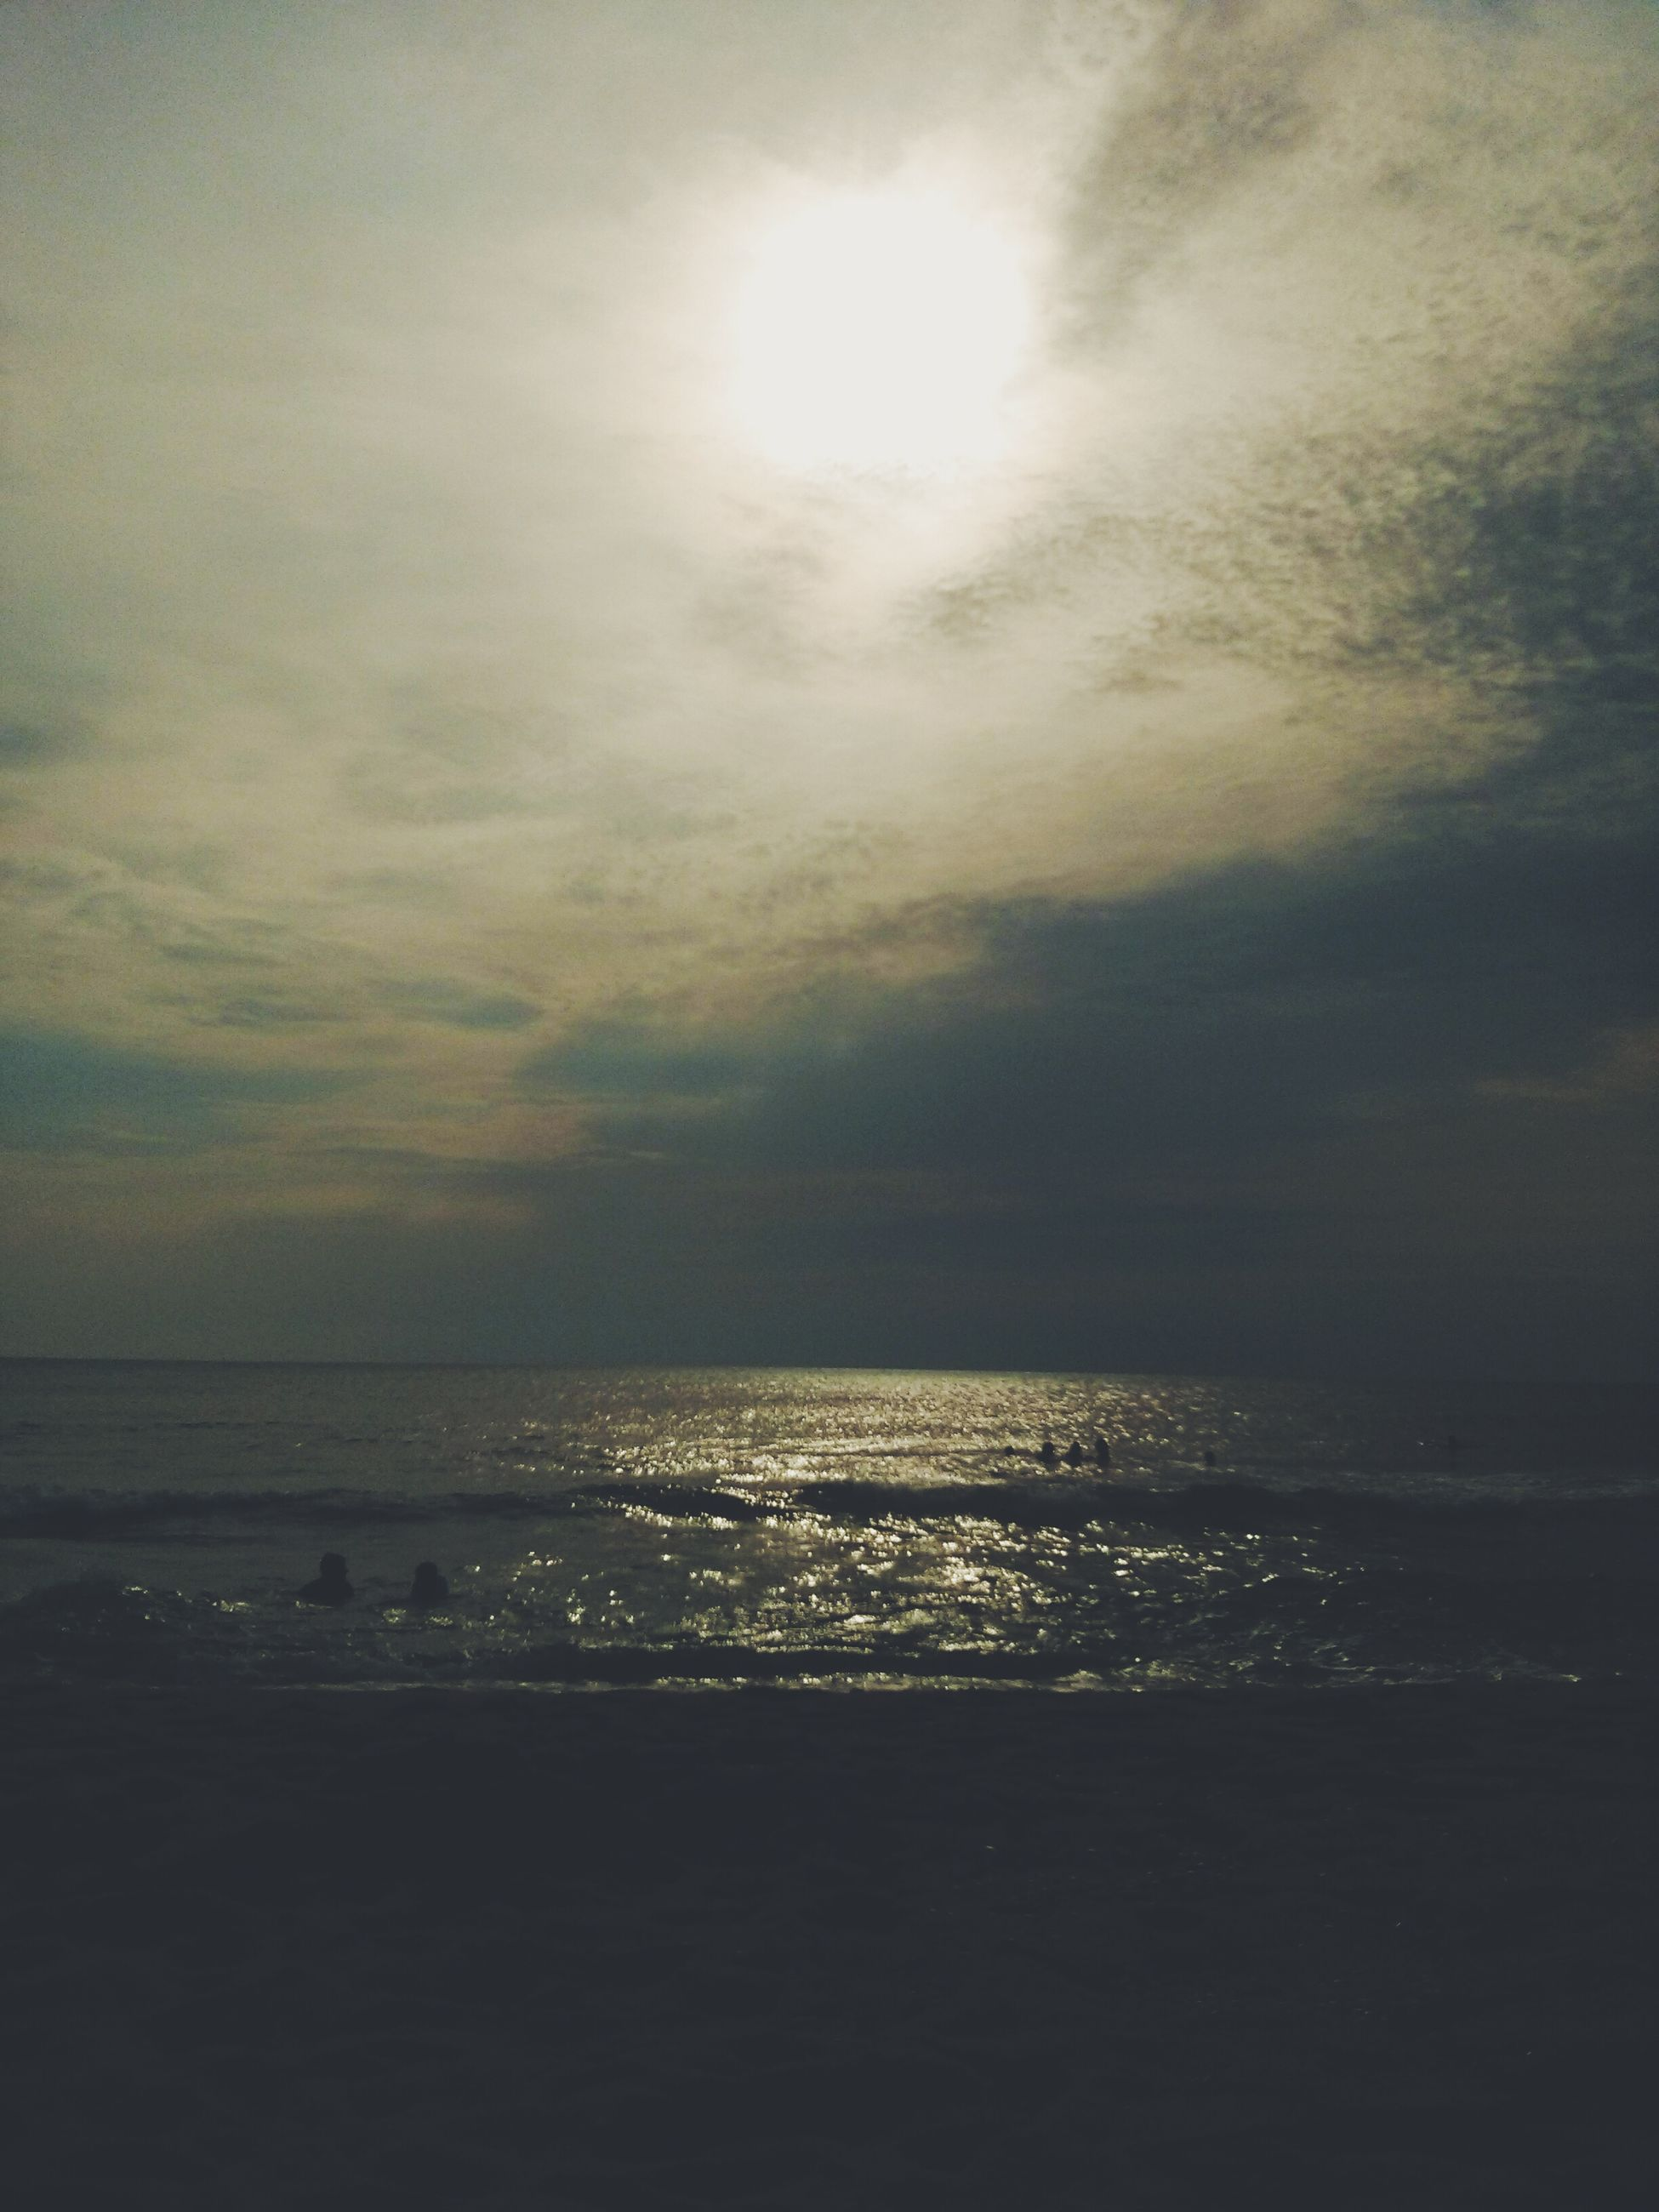 sea, water, horizon over water, sky, scenics, tranquil scene, tranquility, beauty in nature, cloud - sky, beach, nature, sunset, sun, idyllic, shore, waterfront, cloudy, reflection, outdoors, cloud